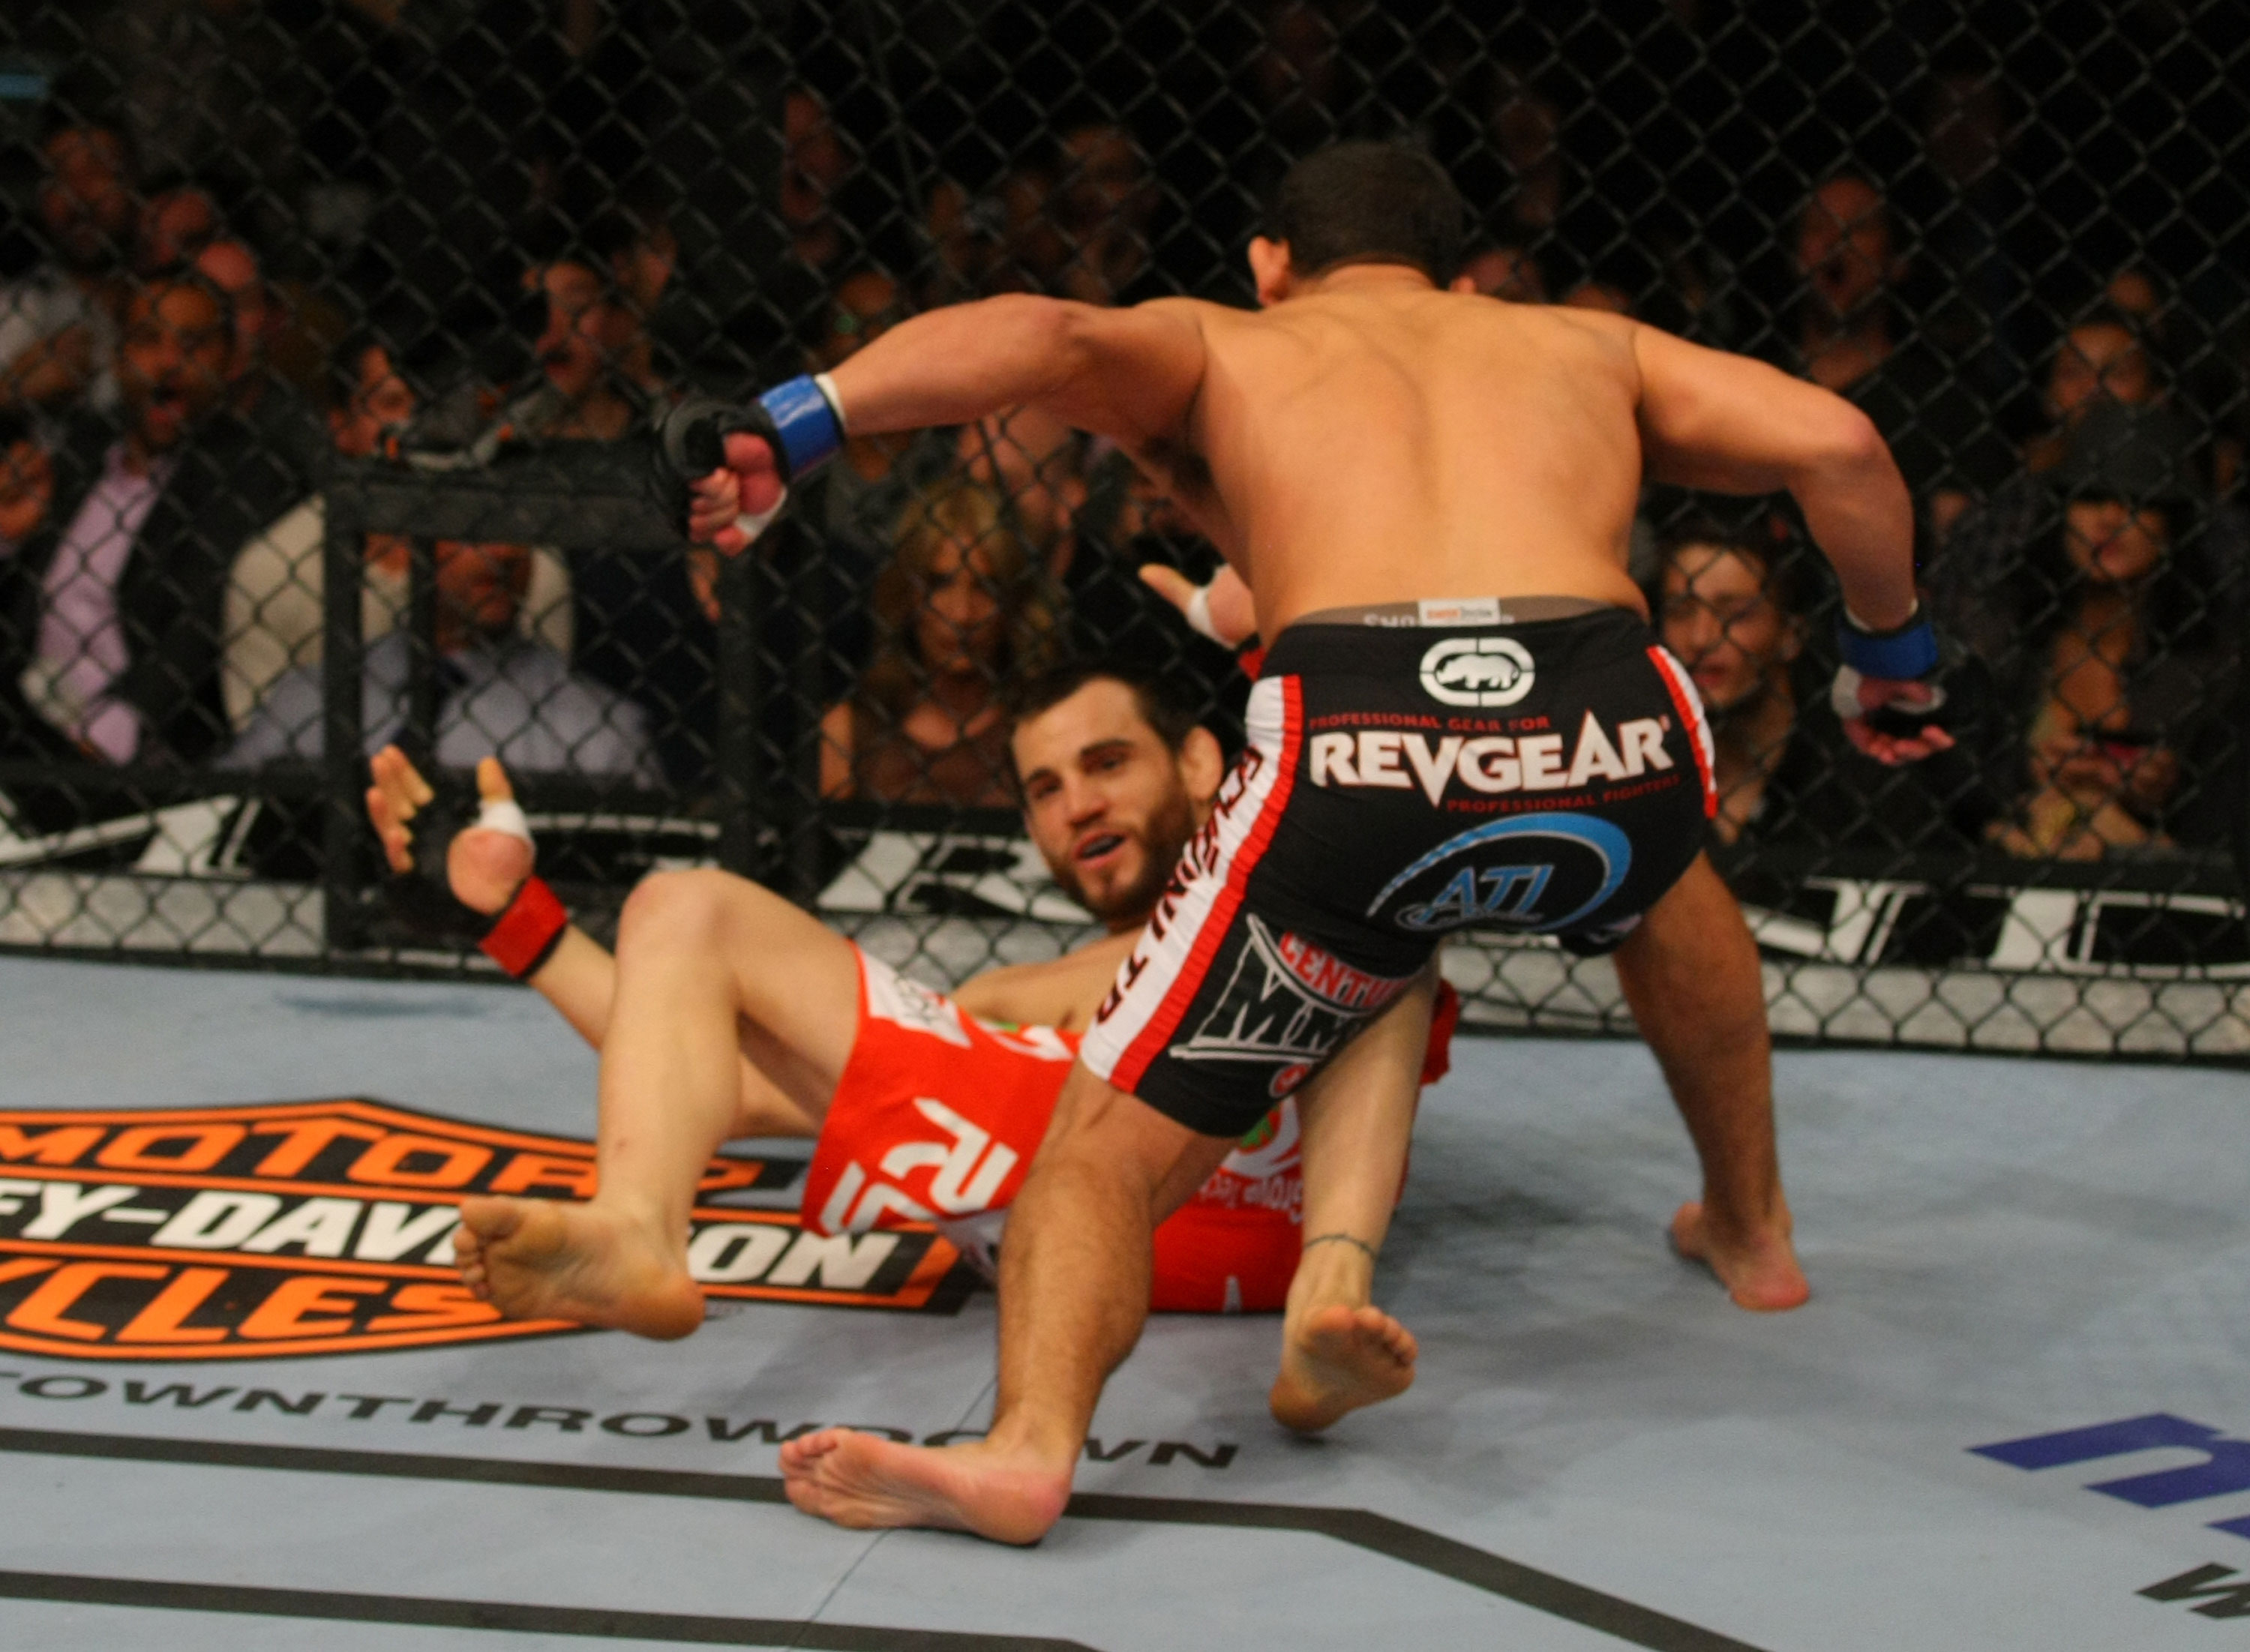 LAS VEGAS, NV - DECEMBER 30:  Johny Hendricks (black shorts) throws a punch at Jon Fitch during the UFC 141 event at the MGM Grand Garden Arena on December 30, 2011 in Las Vegas, Nevada.  (Photo by Donald Miralle/Zuffa LLC/Zuffa LLC via Getty Images) *** Local Caption *** Johny Hendricks; Jon Fitch